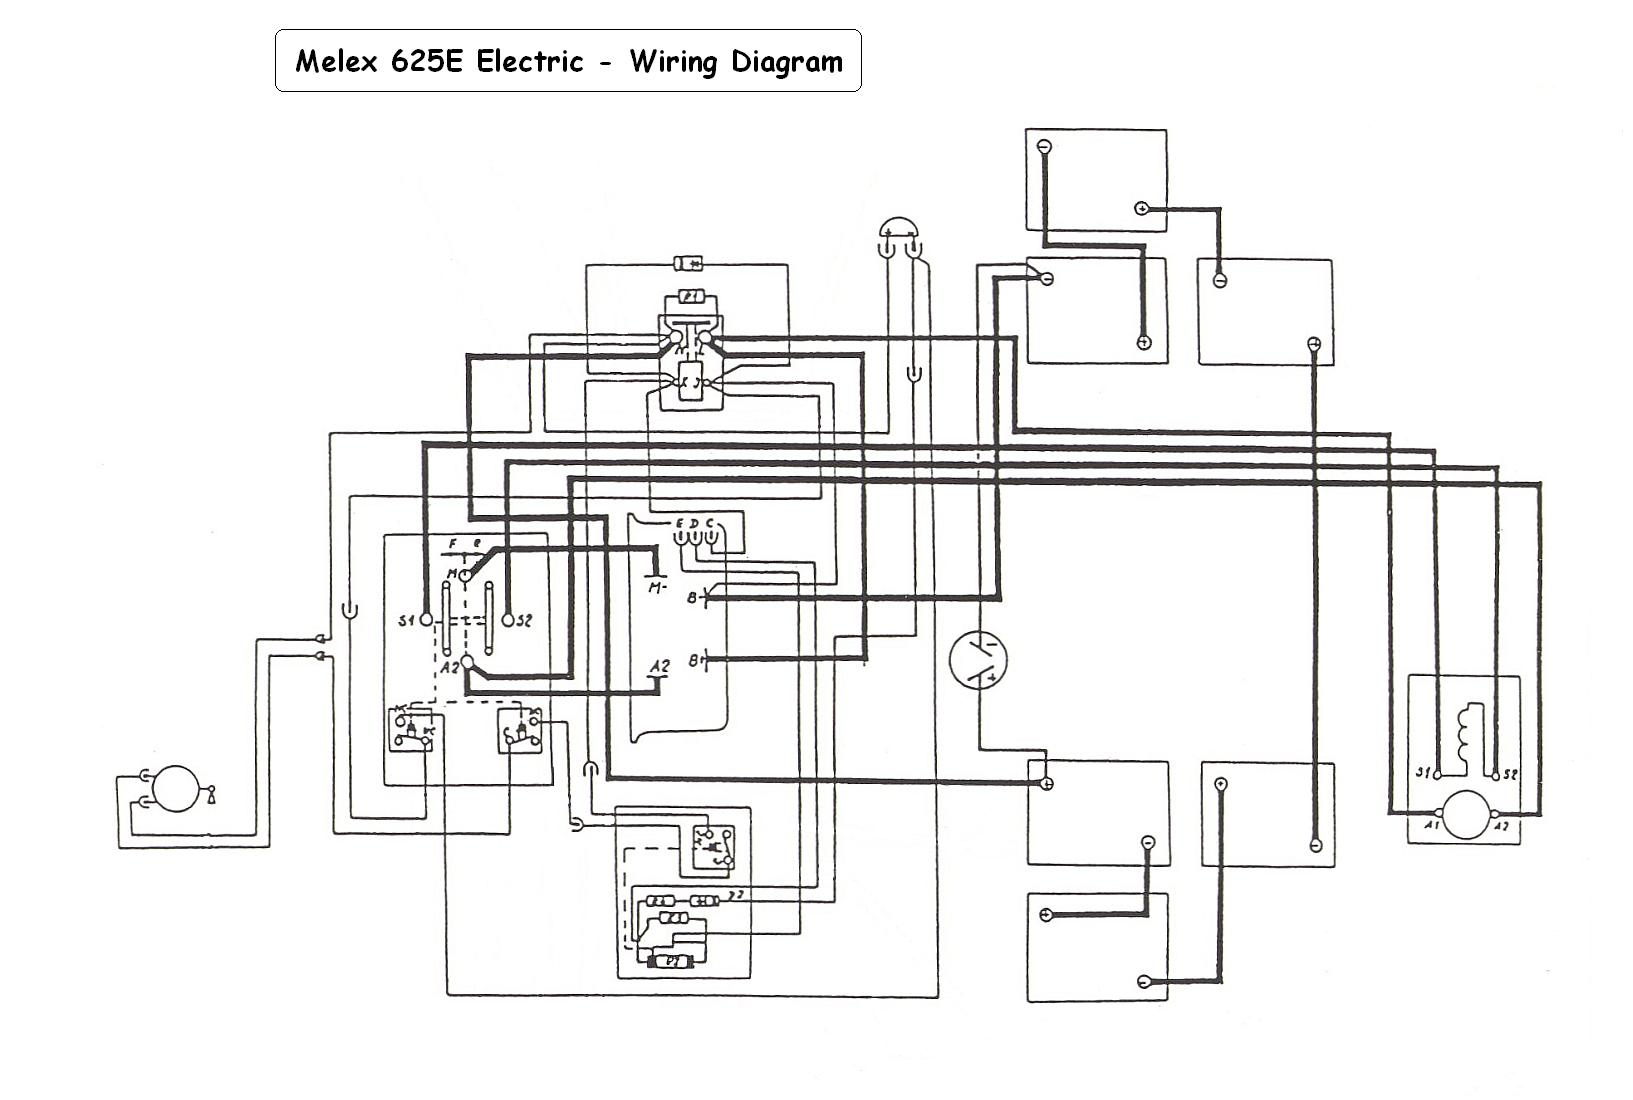 Melex625E_Wiring_Diagram melex 212 golf cart wiring diagram wiring diagram and schematic  at readyjetset.co